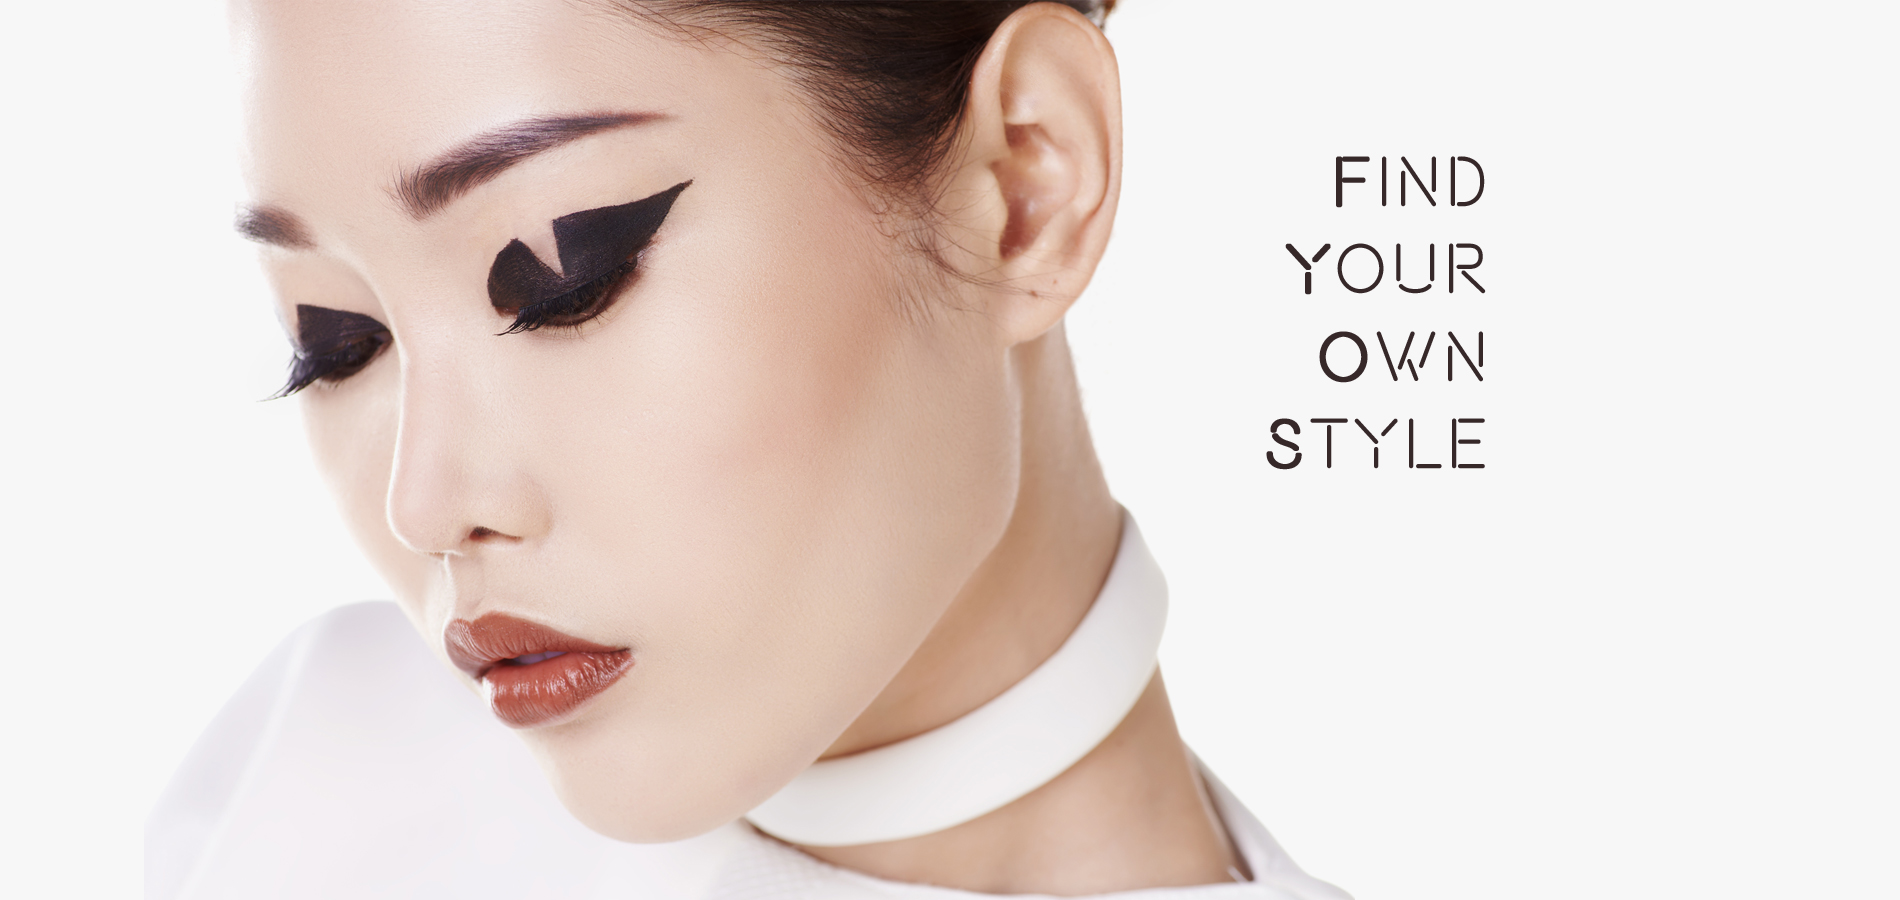 Crystal Claire Cosmetics Inc